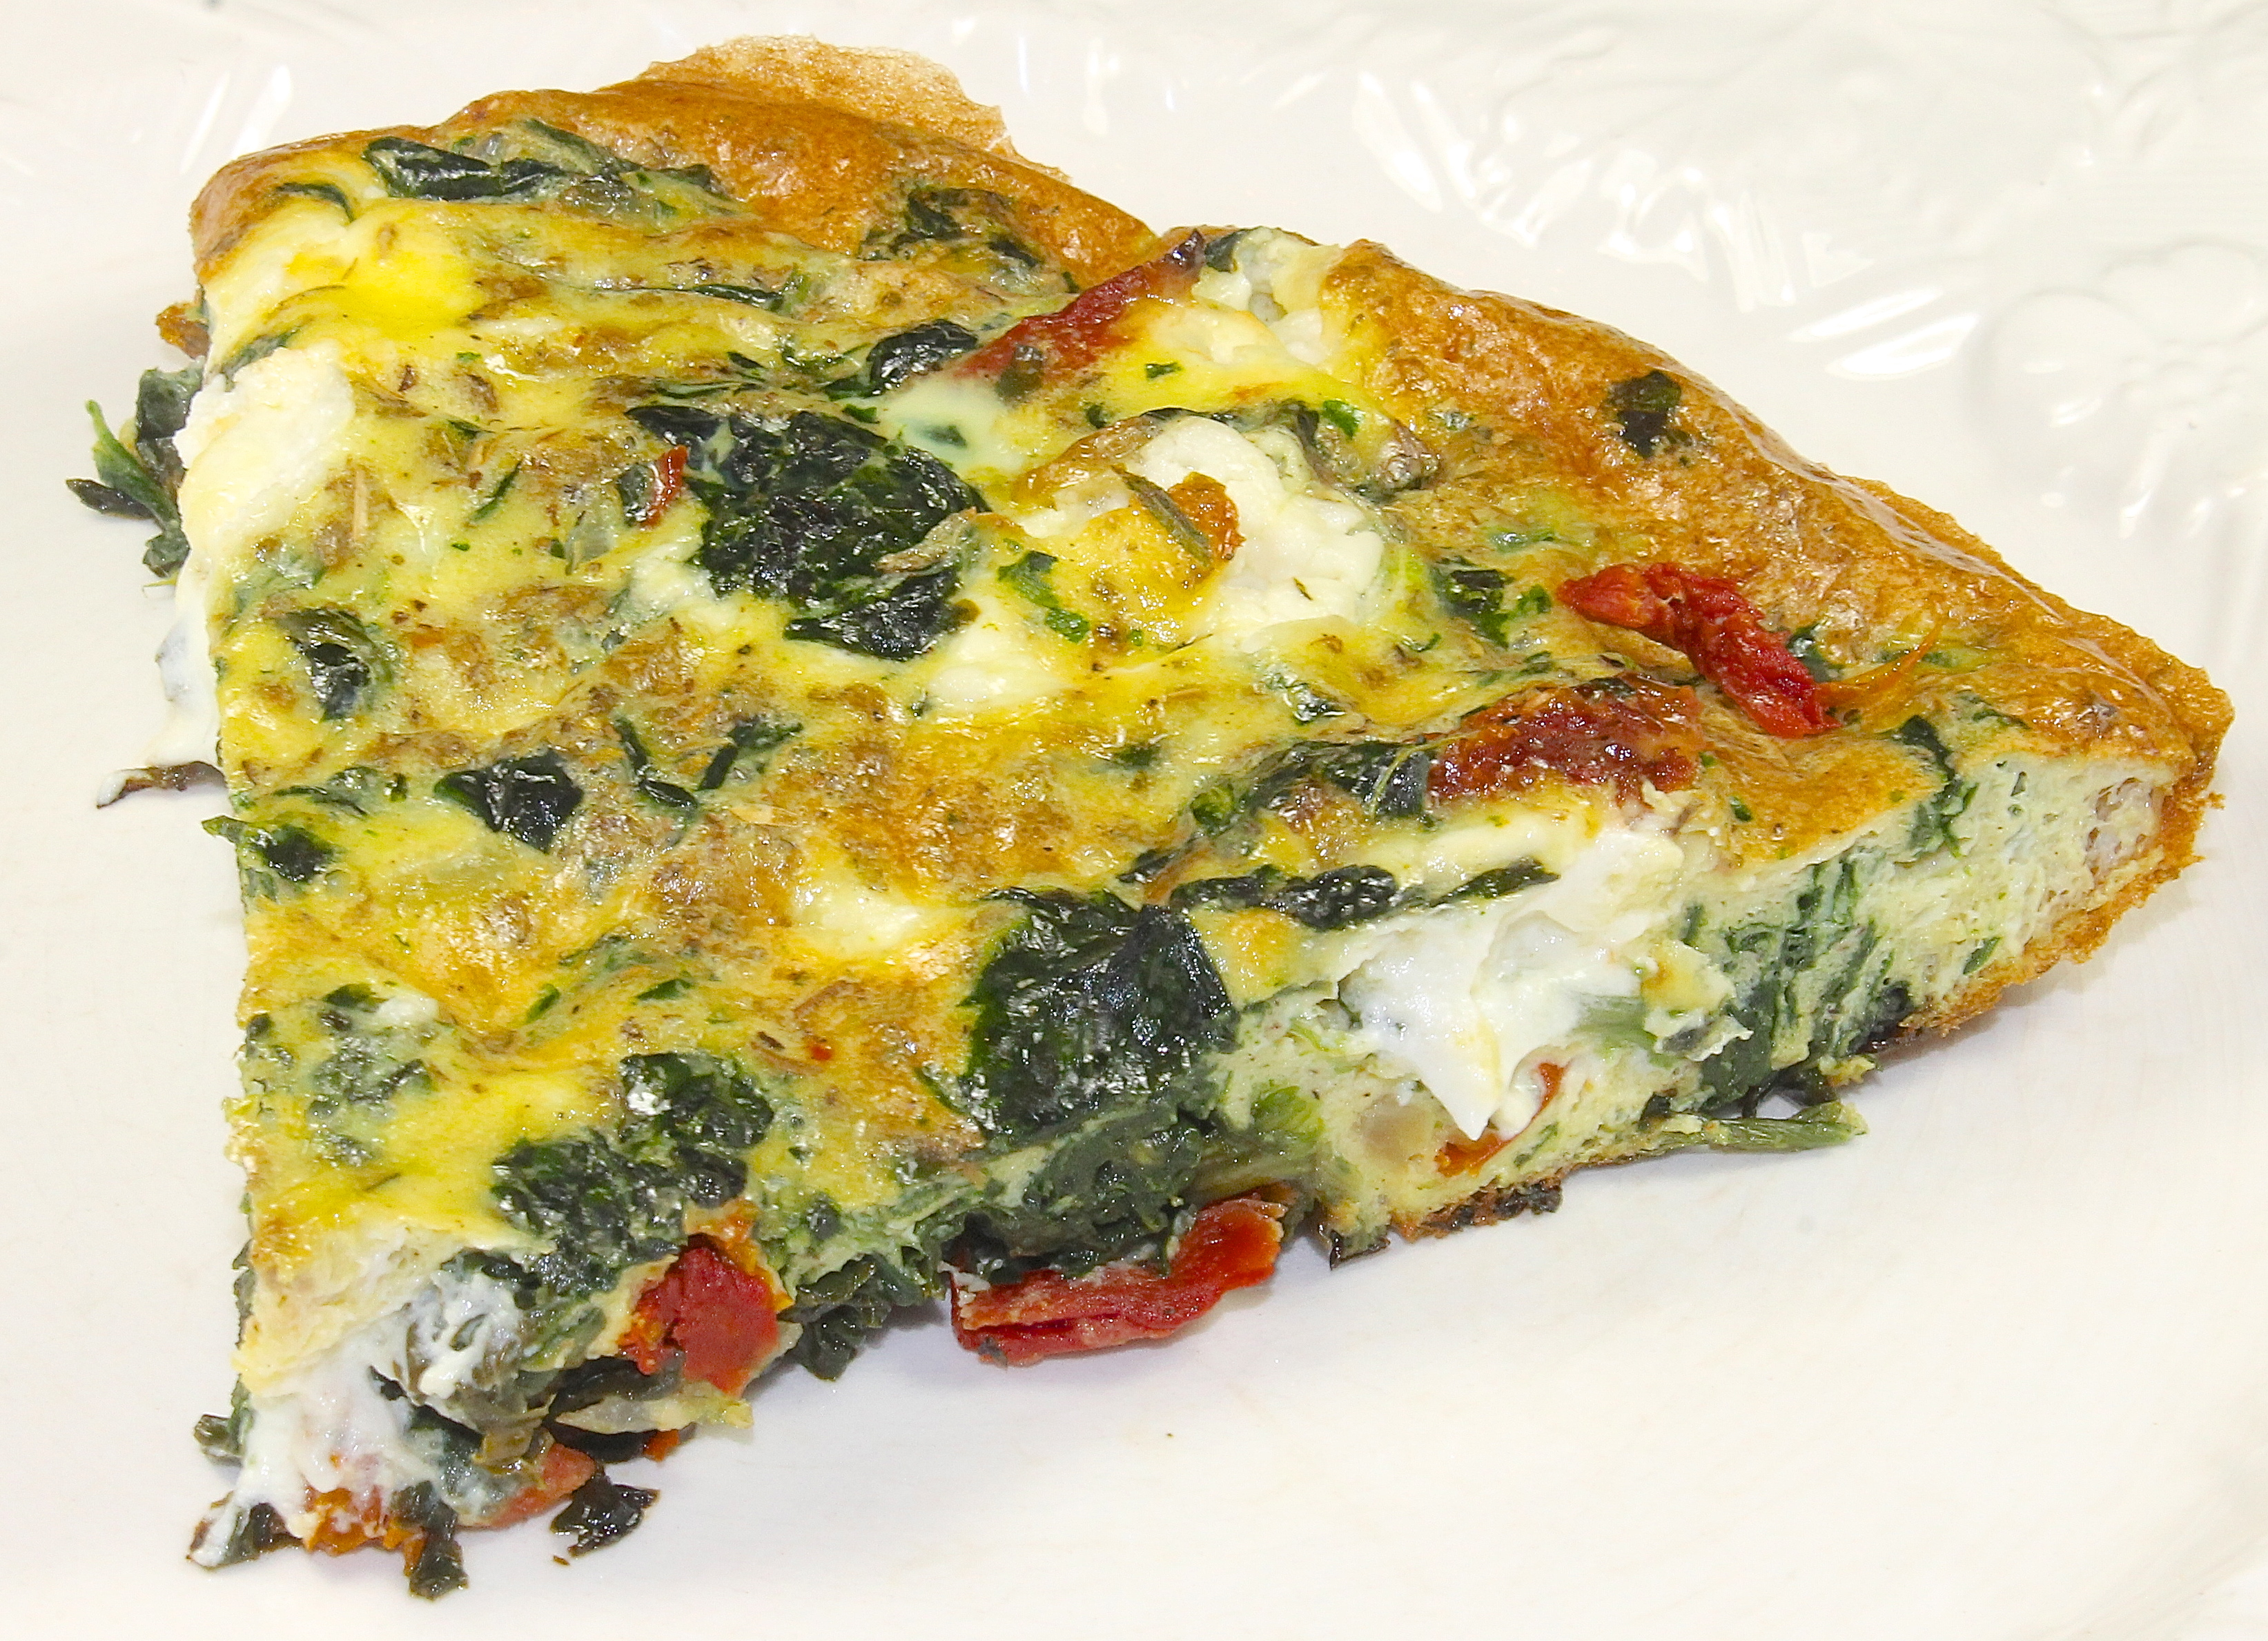 Spinach, Sun Dried Tomato and Goat Cheese Frittata